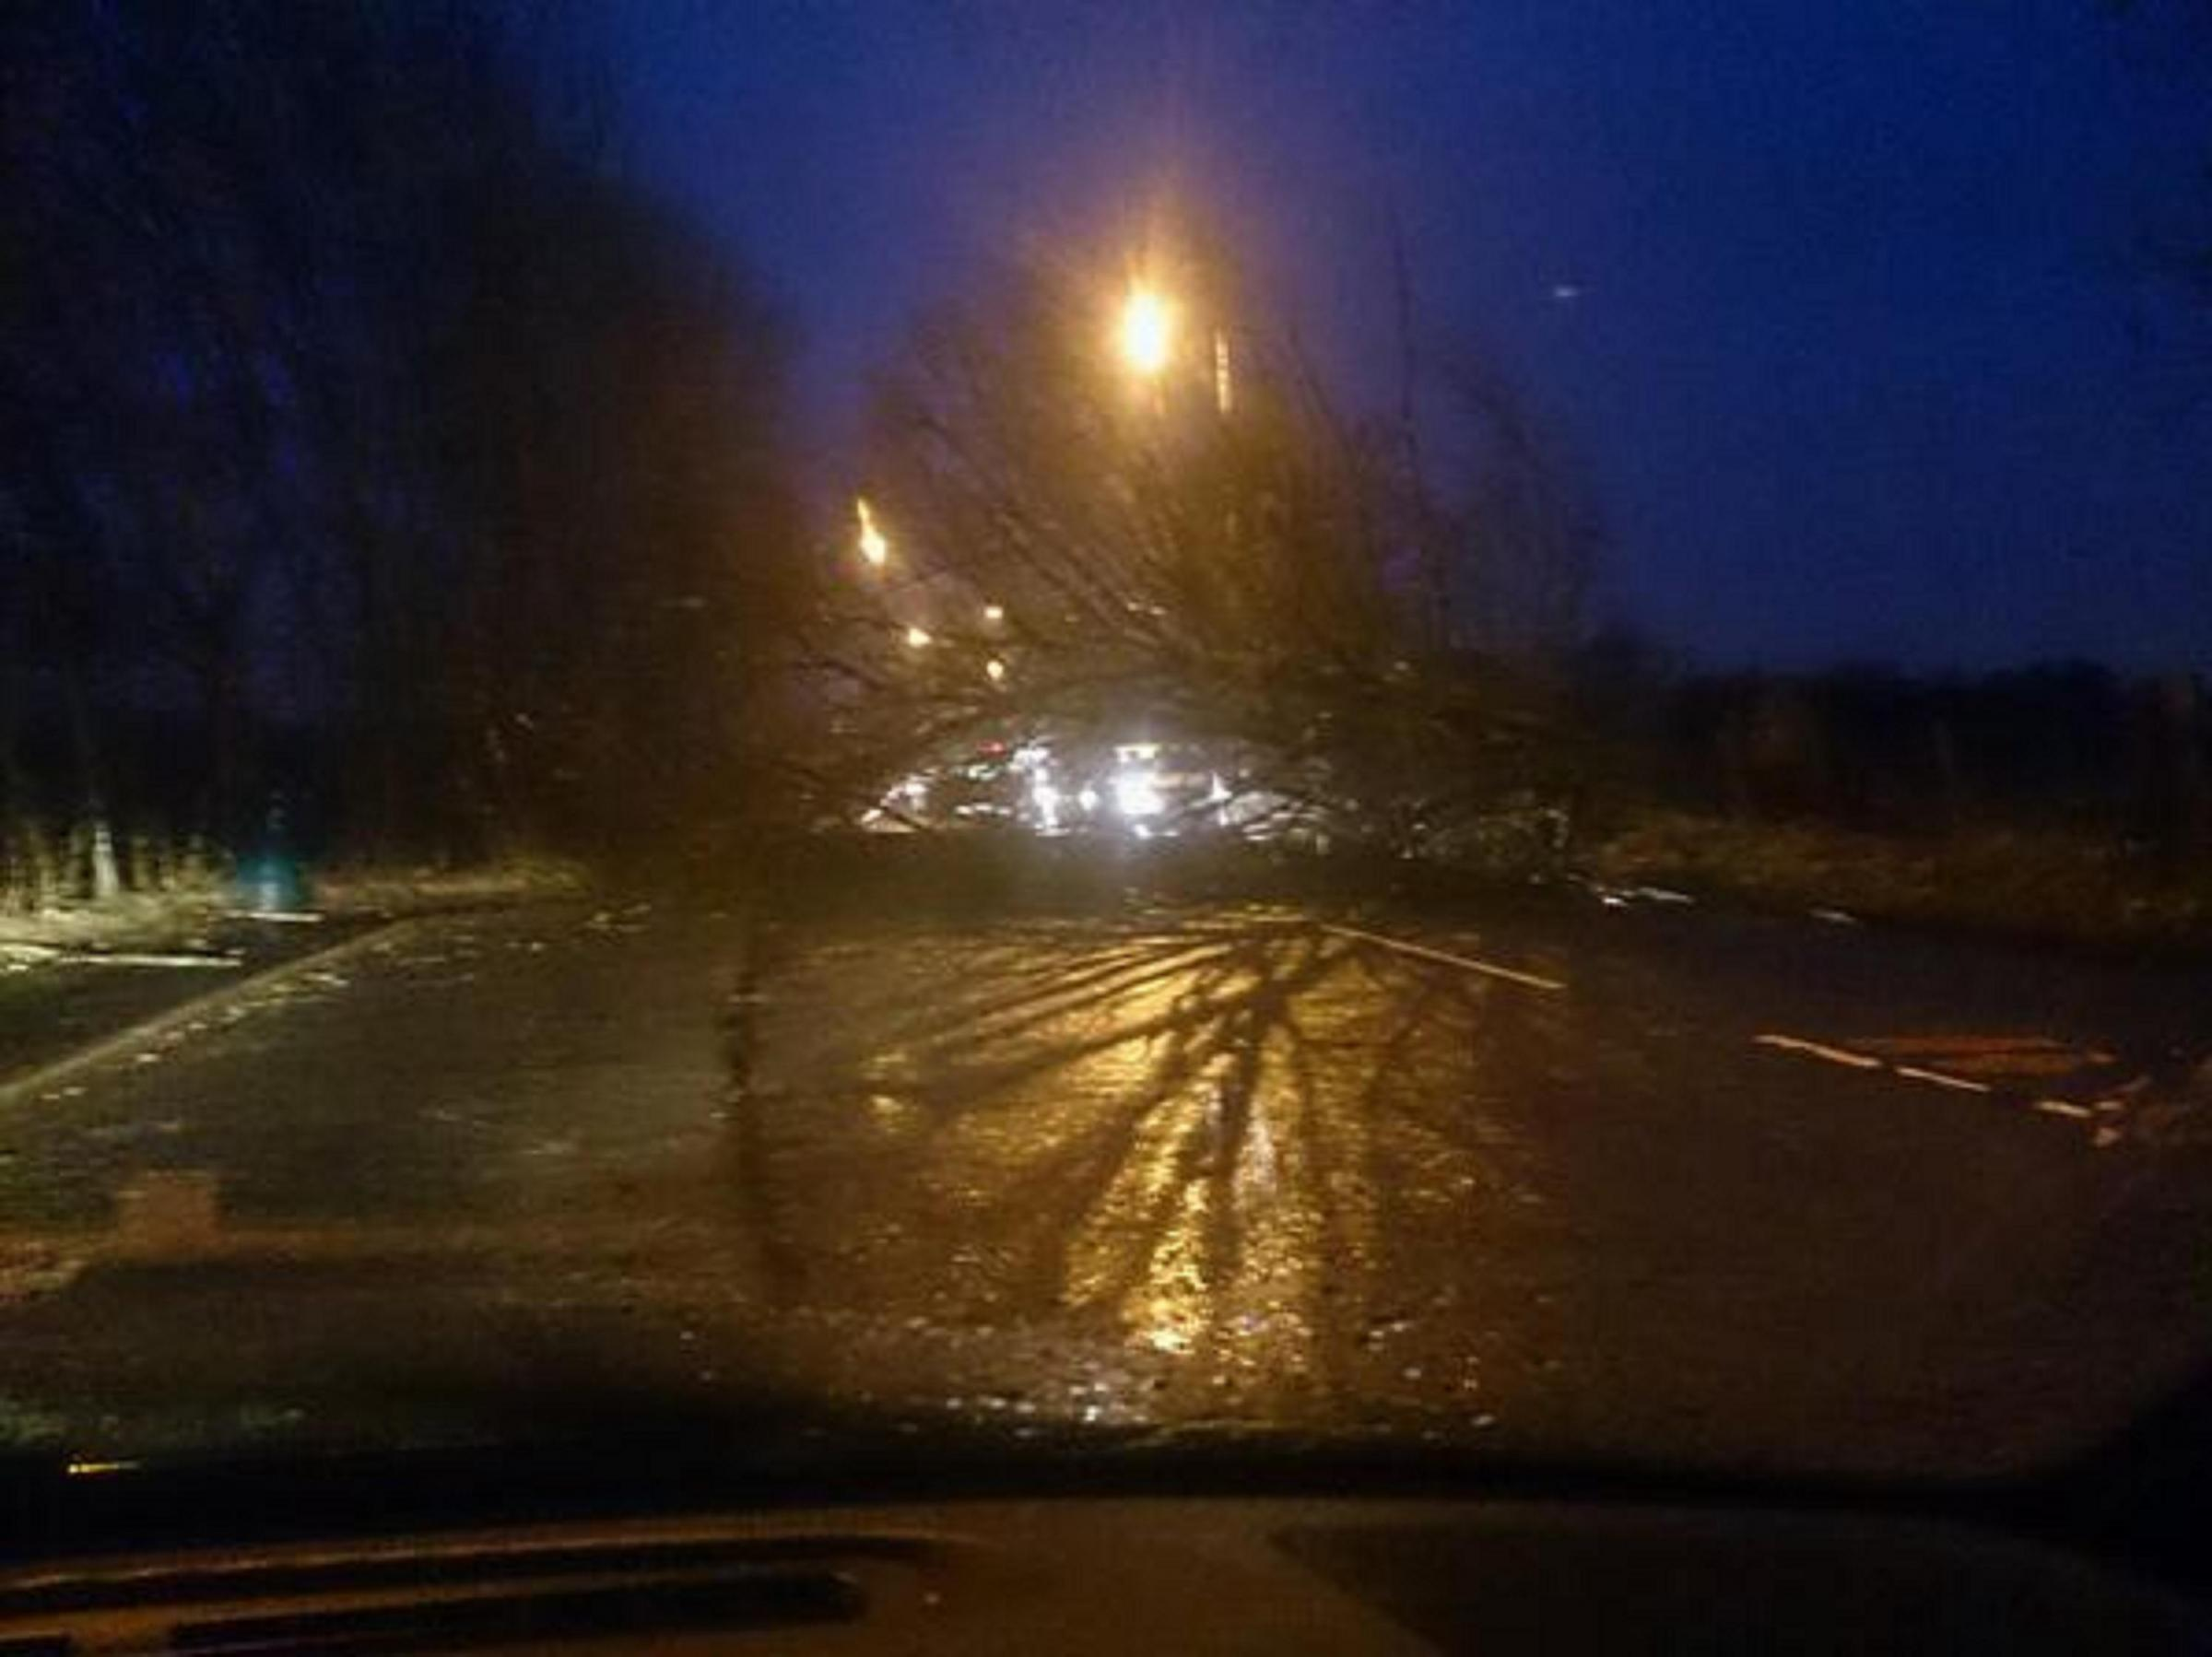 The tree blocking Ringley Road last night. Picture by @on2wheels via Twitter.